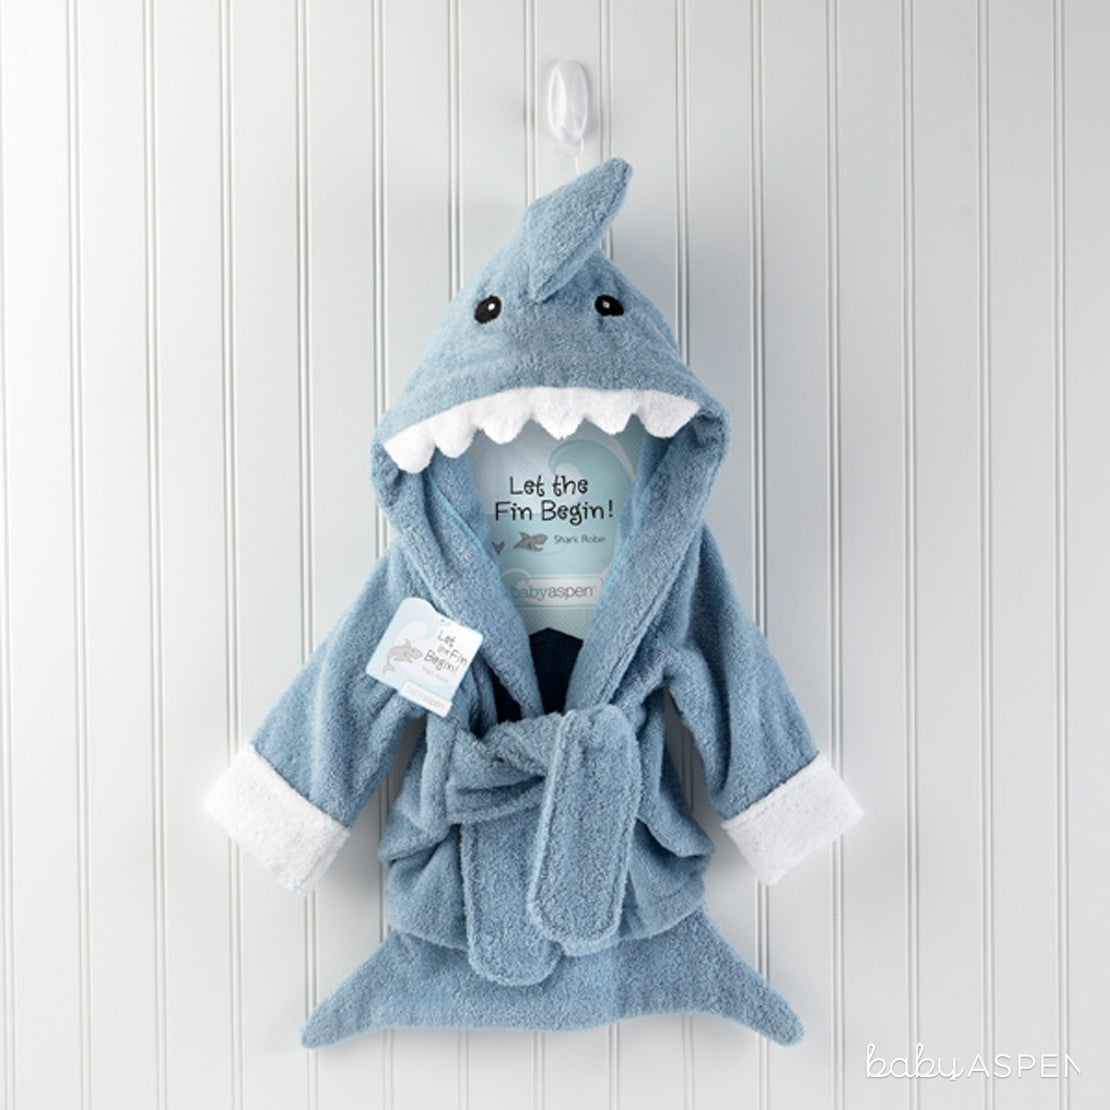 Let the Fin Begin Terry Shark Robe | Our Favorite Baby Gifts from 2016 | Baby Aspen